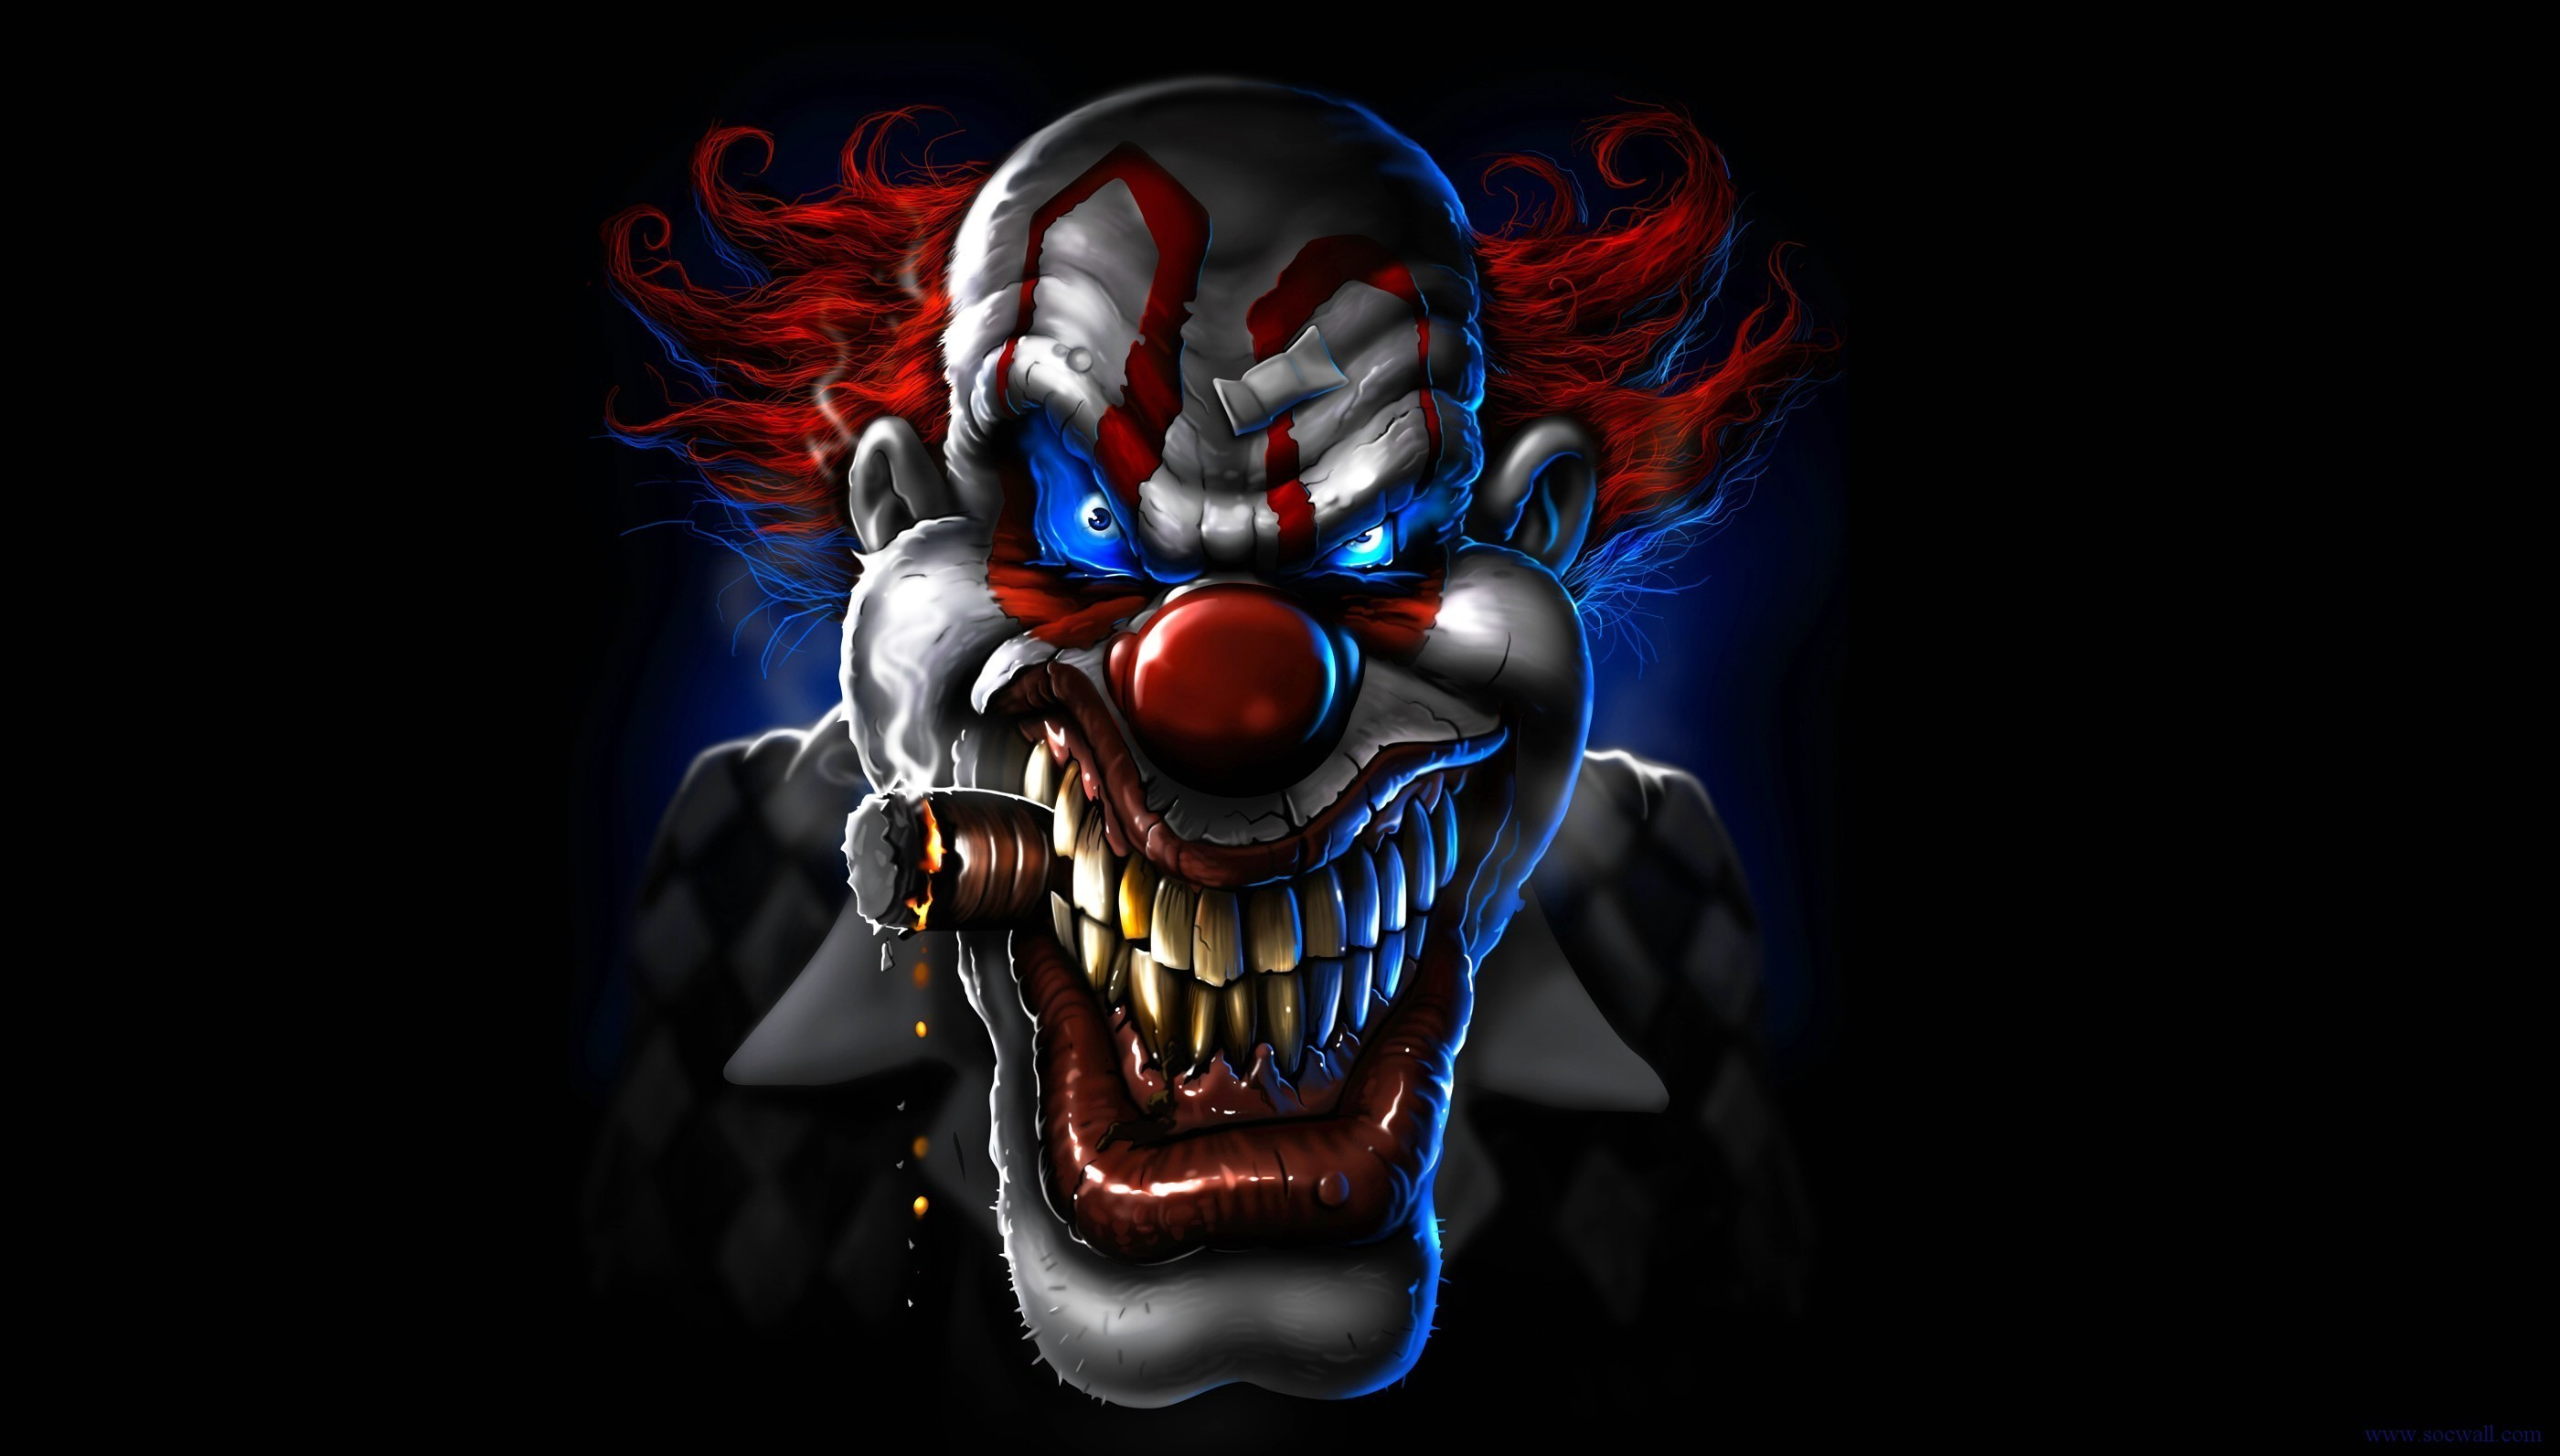 Res: 2800x1593, 2560x1600 Images For > Killer Clown Wallpaper